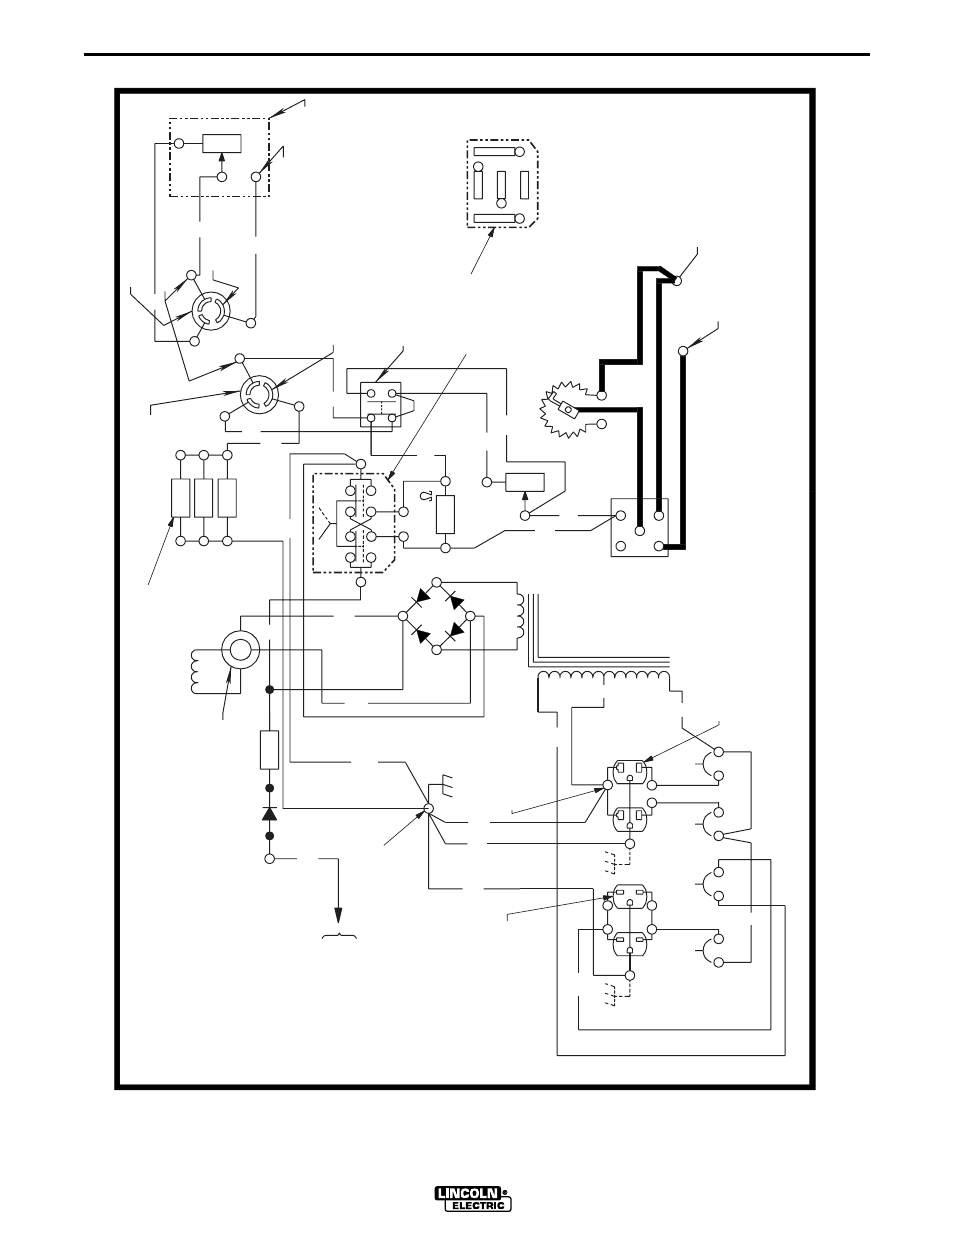 lincoln ac 225 wiring diagram wiring diagrams scematic lincoln 225 ac power requirements lincoln 225 ac schematic [ 954 x 1235 Pixel ]